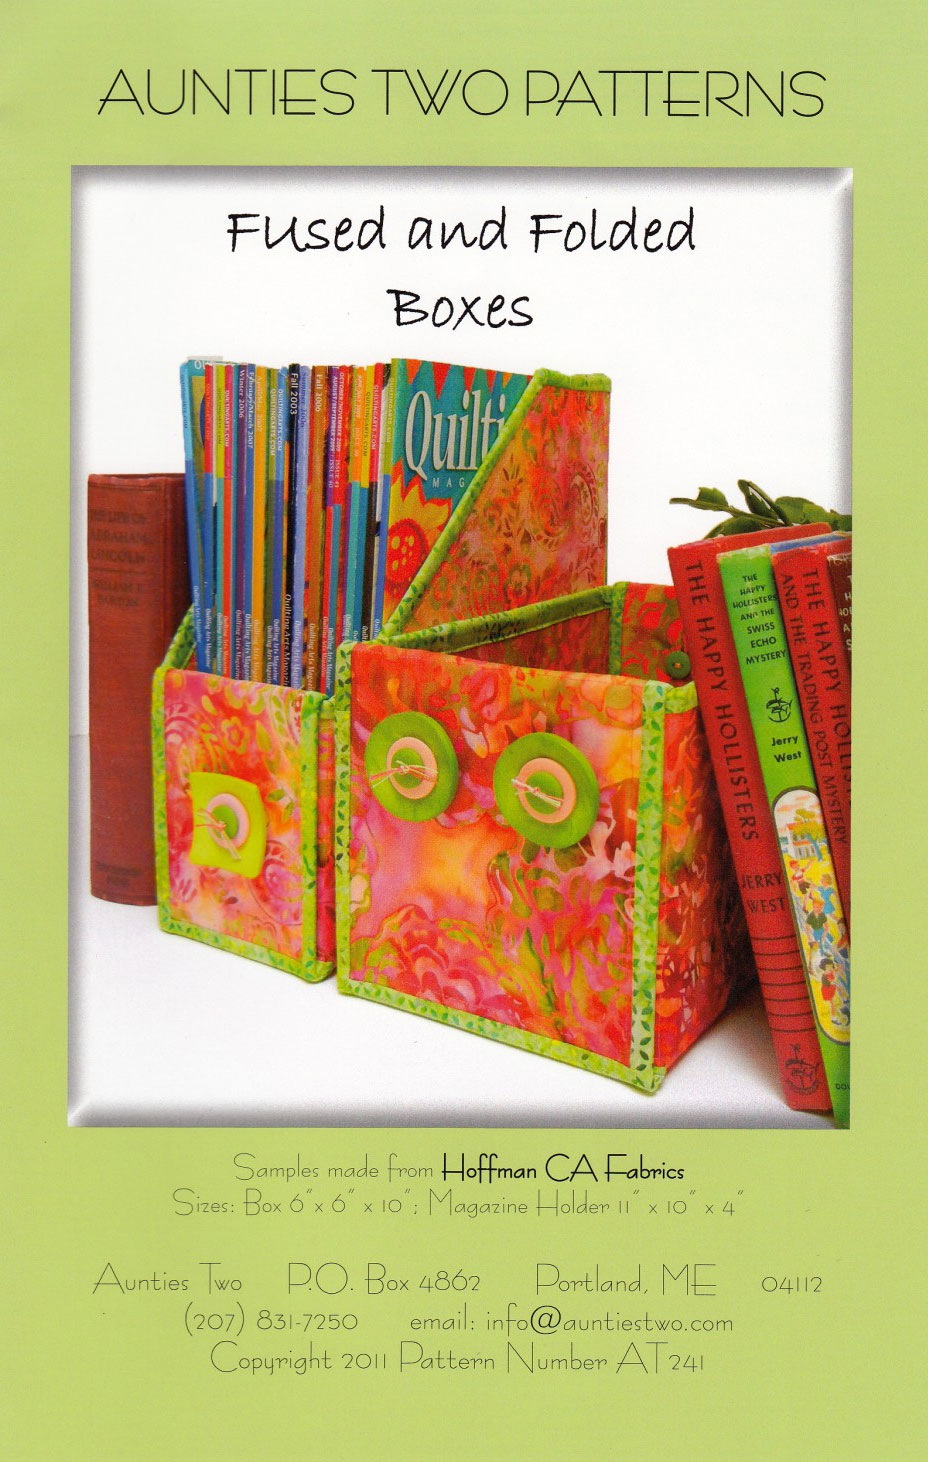 Fused-and-Folded-Boxes-sewing-pattern-Aunties-Two-front